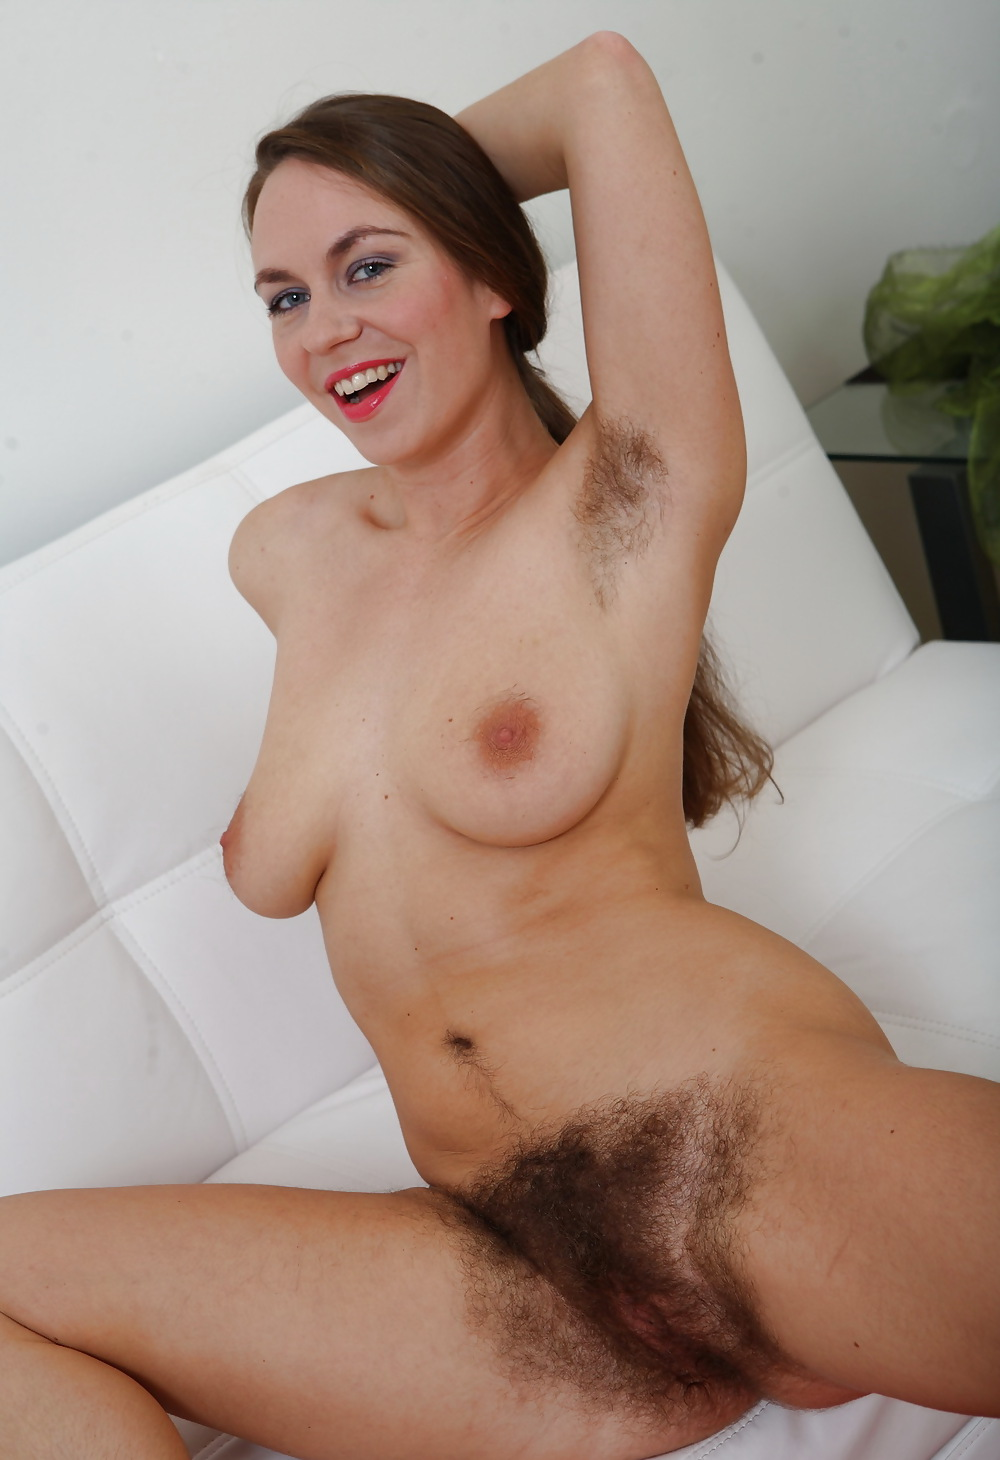 Innocent hairy irish woman nude asian amateur porn